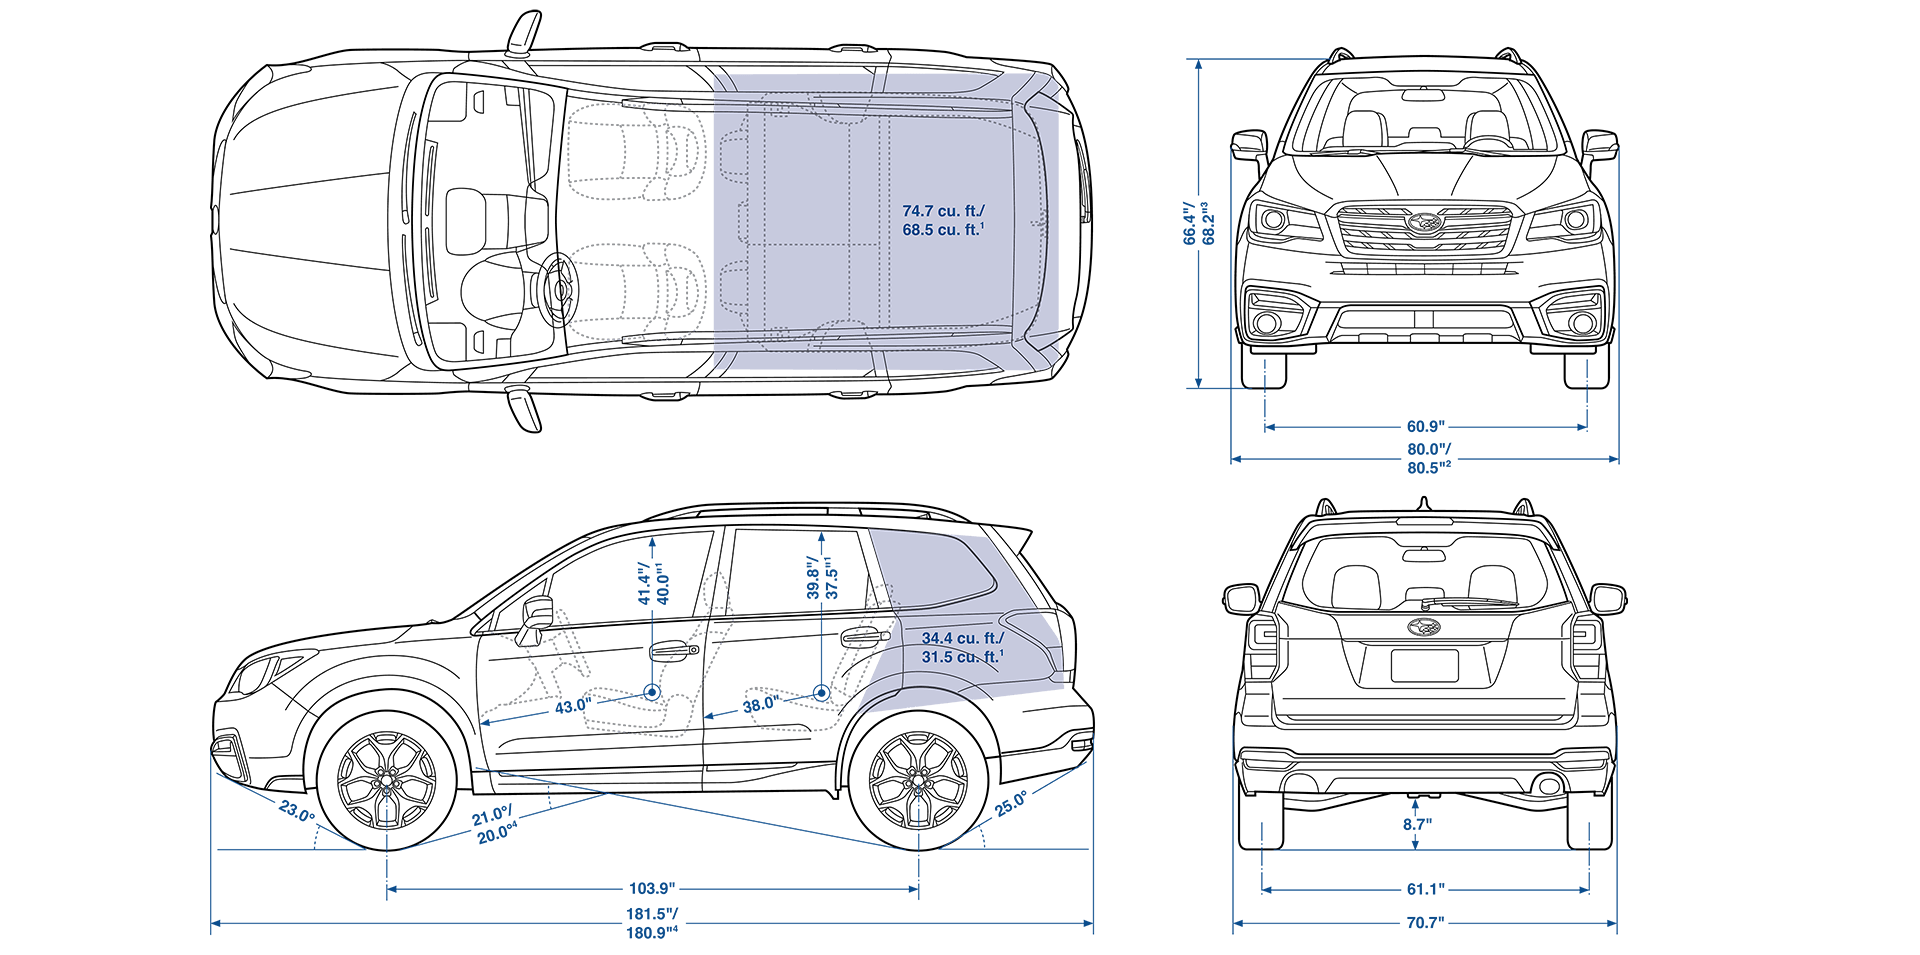 Forester gas tank size. Subaru drawing sketch transparent stock